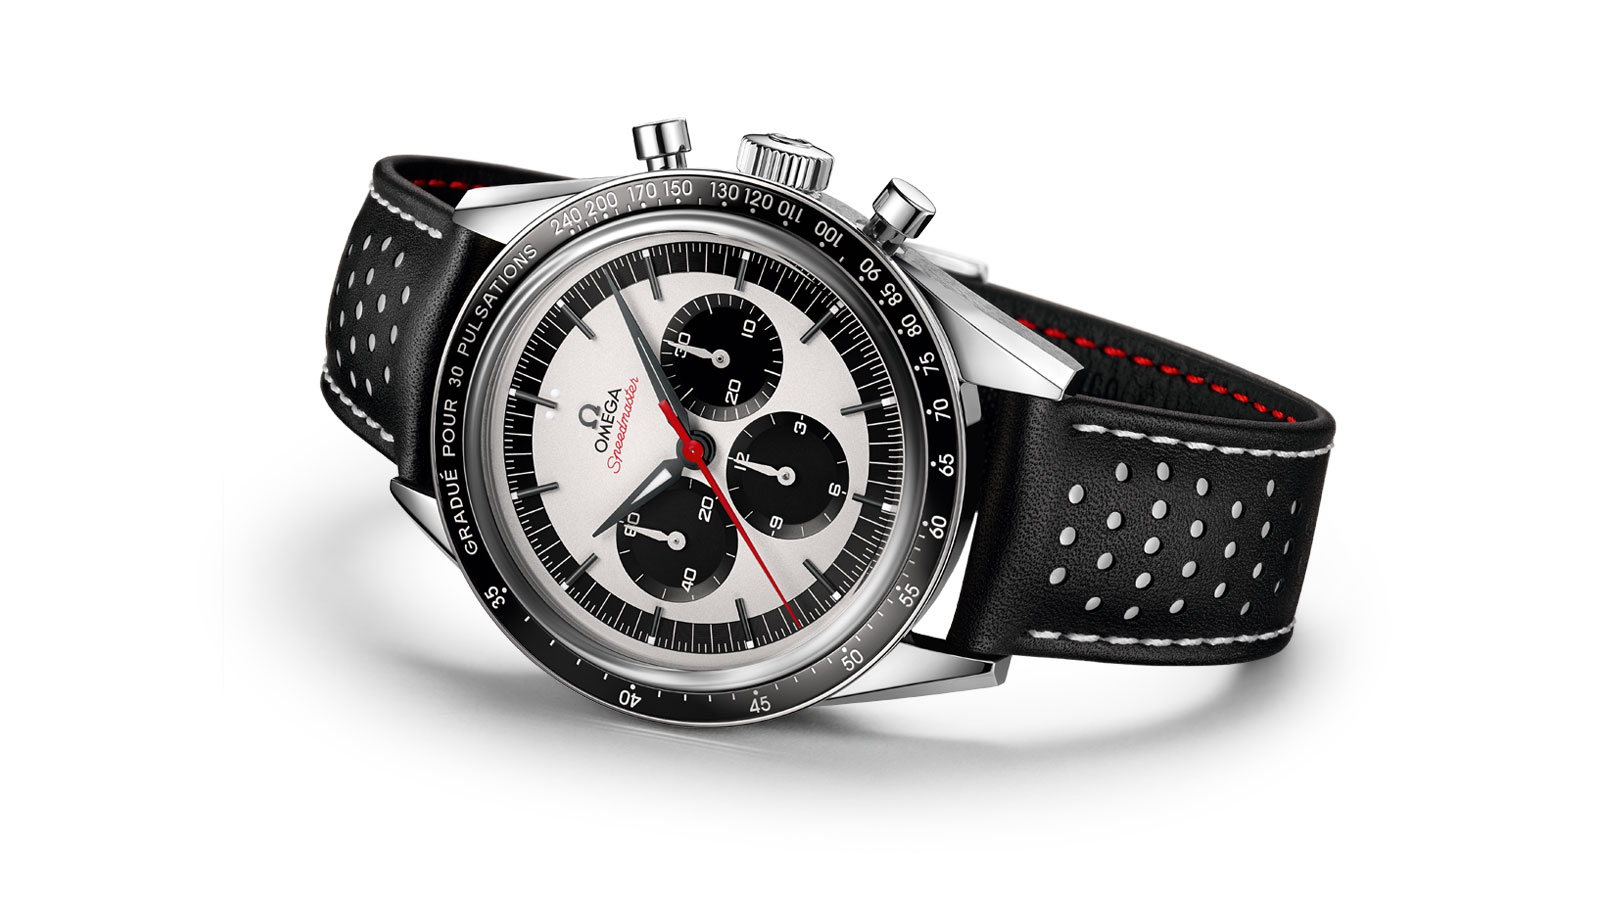 Speedmaster ムーンウォッチ Moonwatch Chronograph 39.7 mm - 311.32.40.30.02.001 - ビュー 3